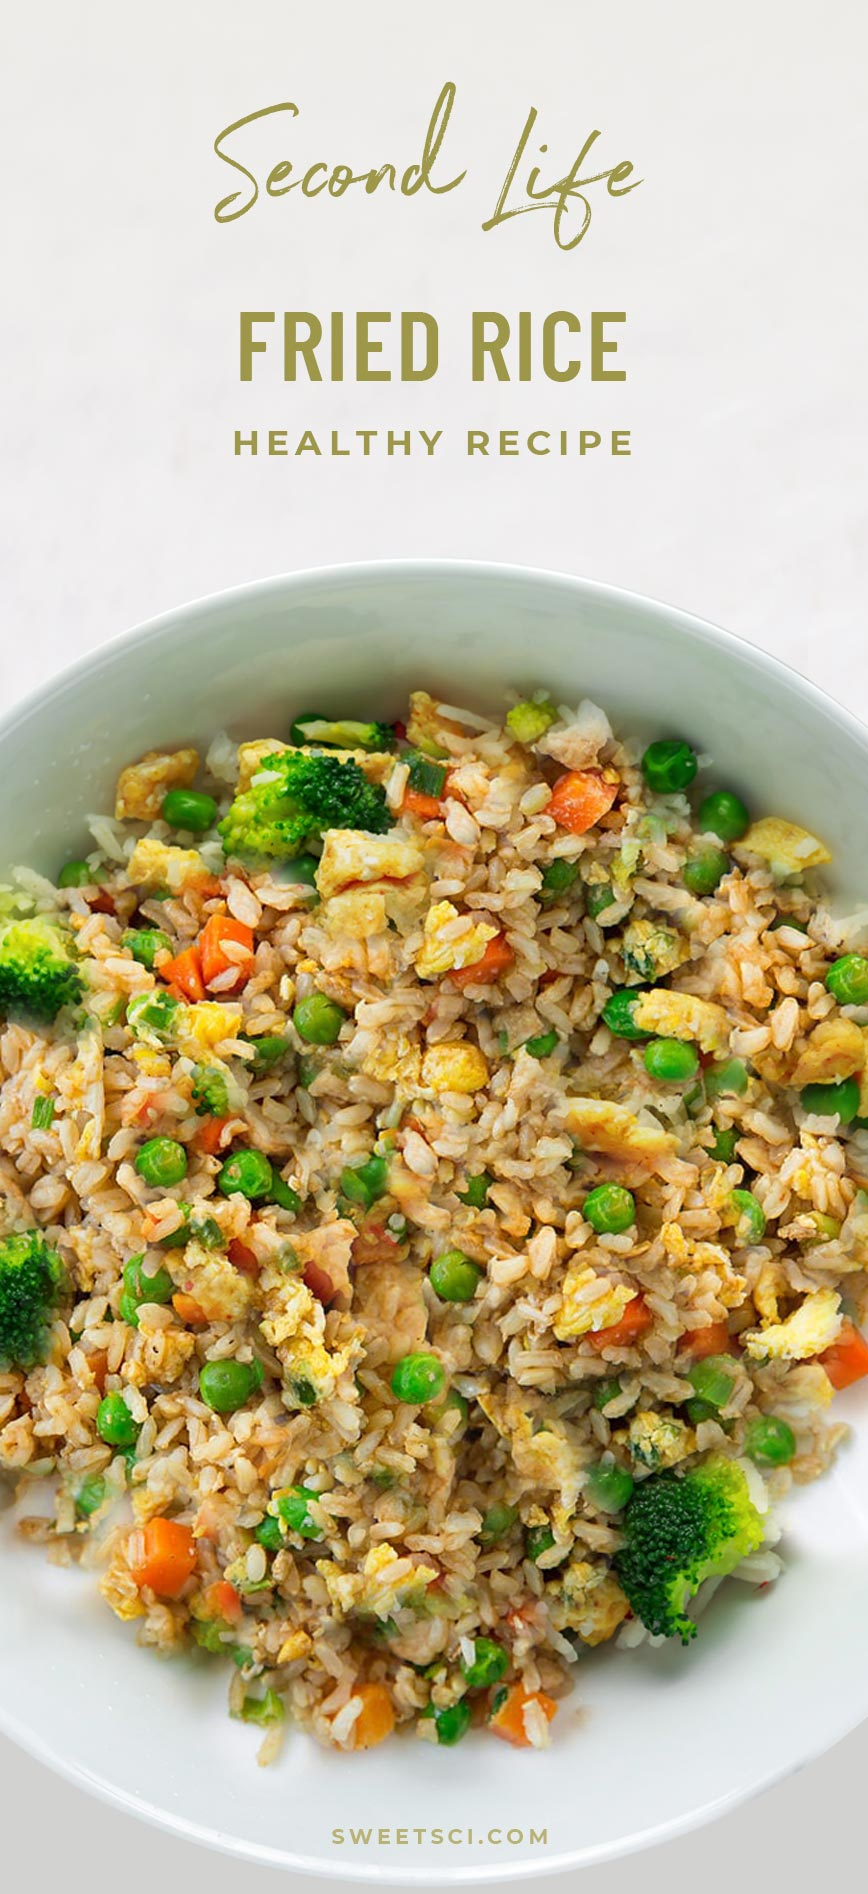 Second Life Healthy Fried Rice Recipe: Leftover (or freshly cooked) Brown or Wild Rice, Eggs, Onion, Garlic, Veggies, green peas, Untoasted sesame oil, Tamari (wheat-free soy sauce) to taste - Sweet Science Nutrition & Wellness, Healthy Sobriety with health coach Elena Skroznikova